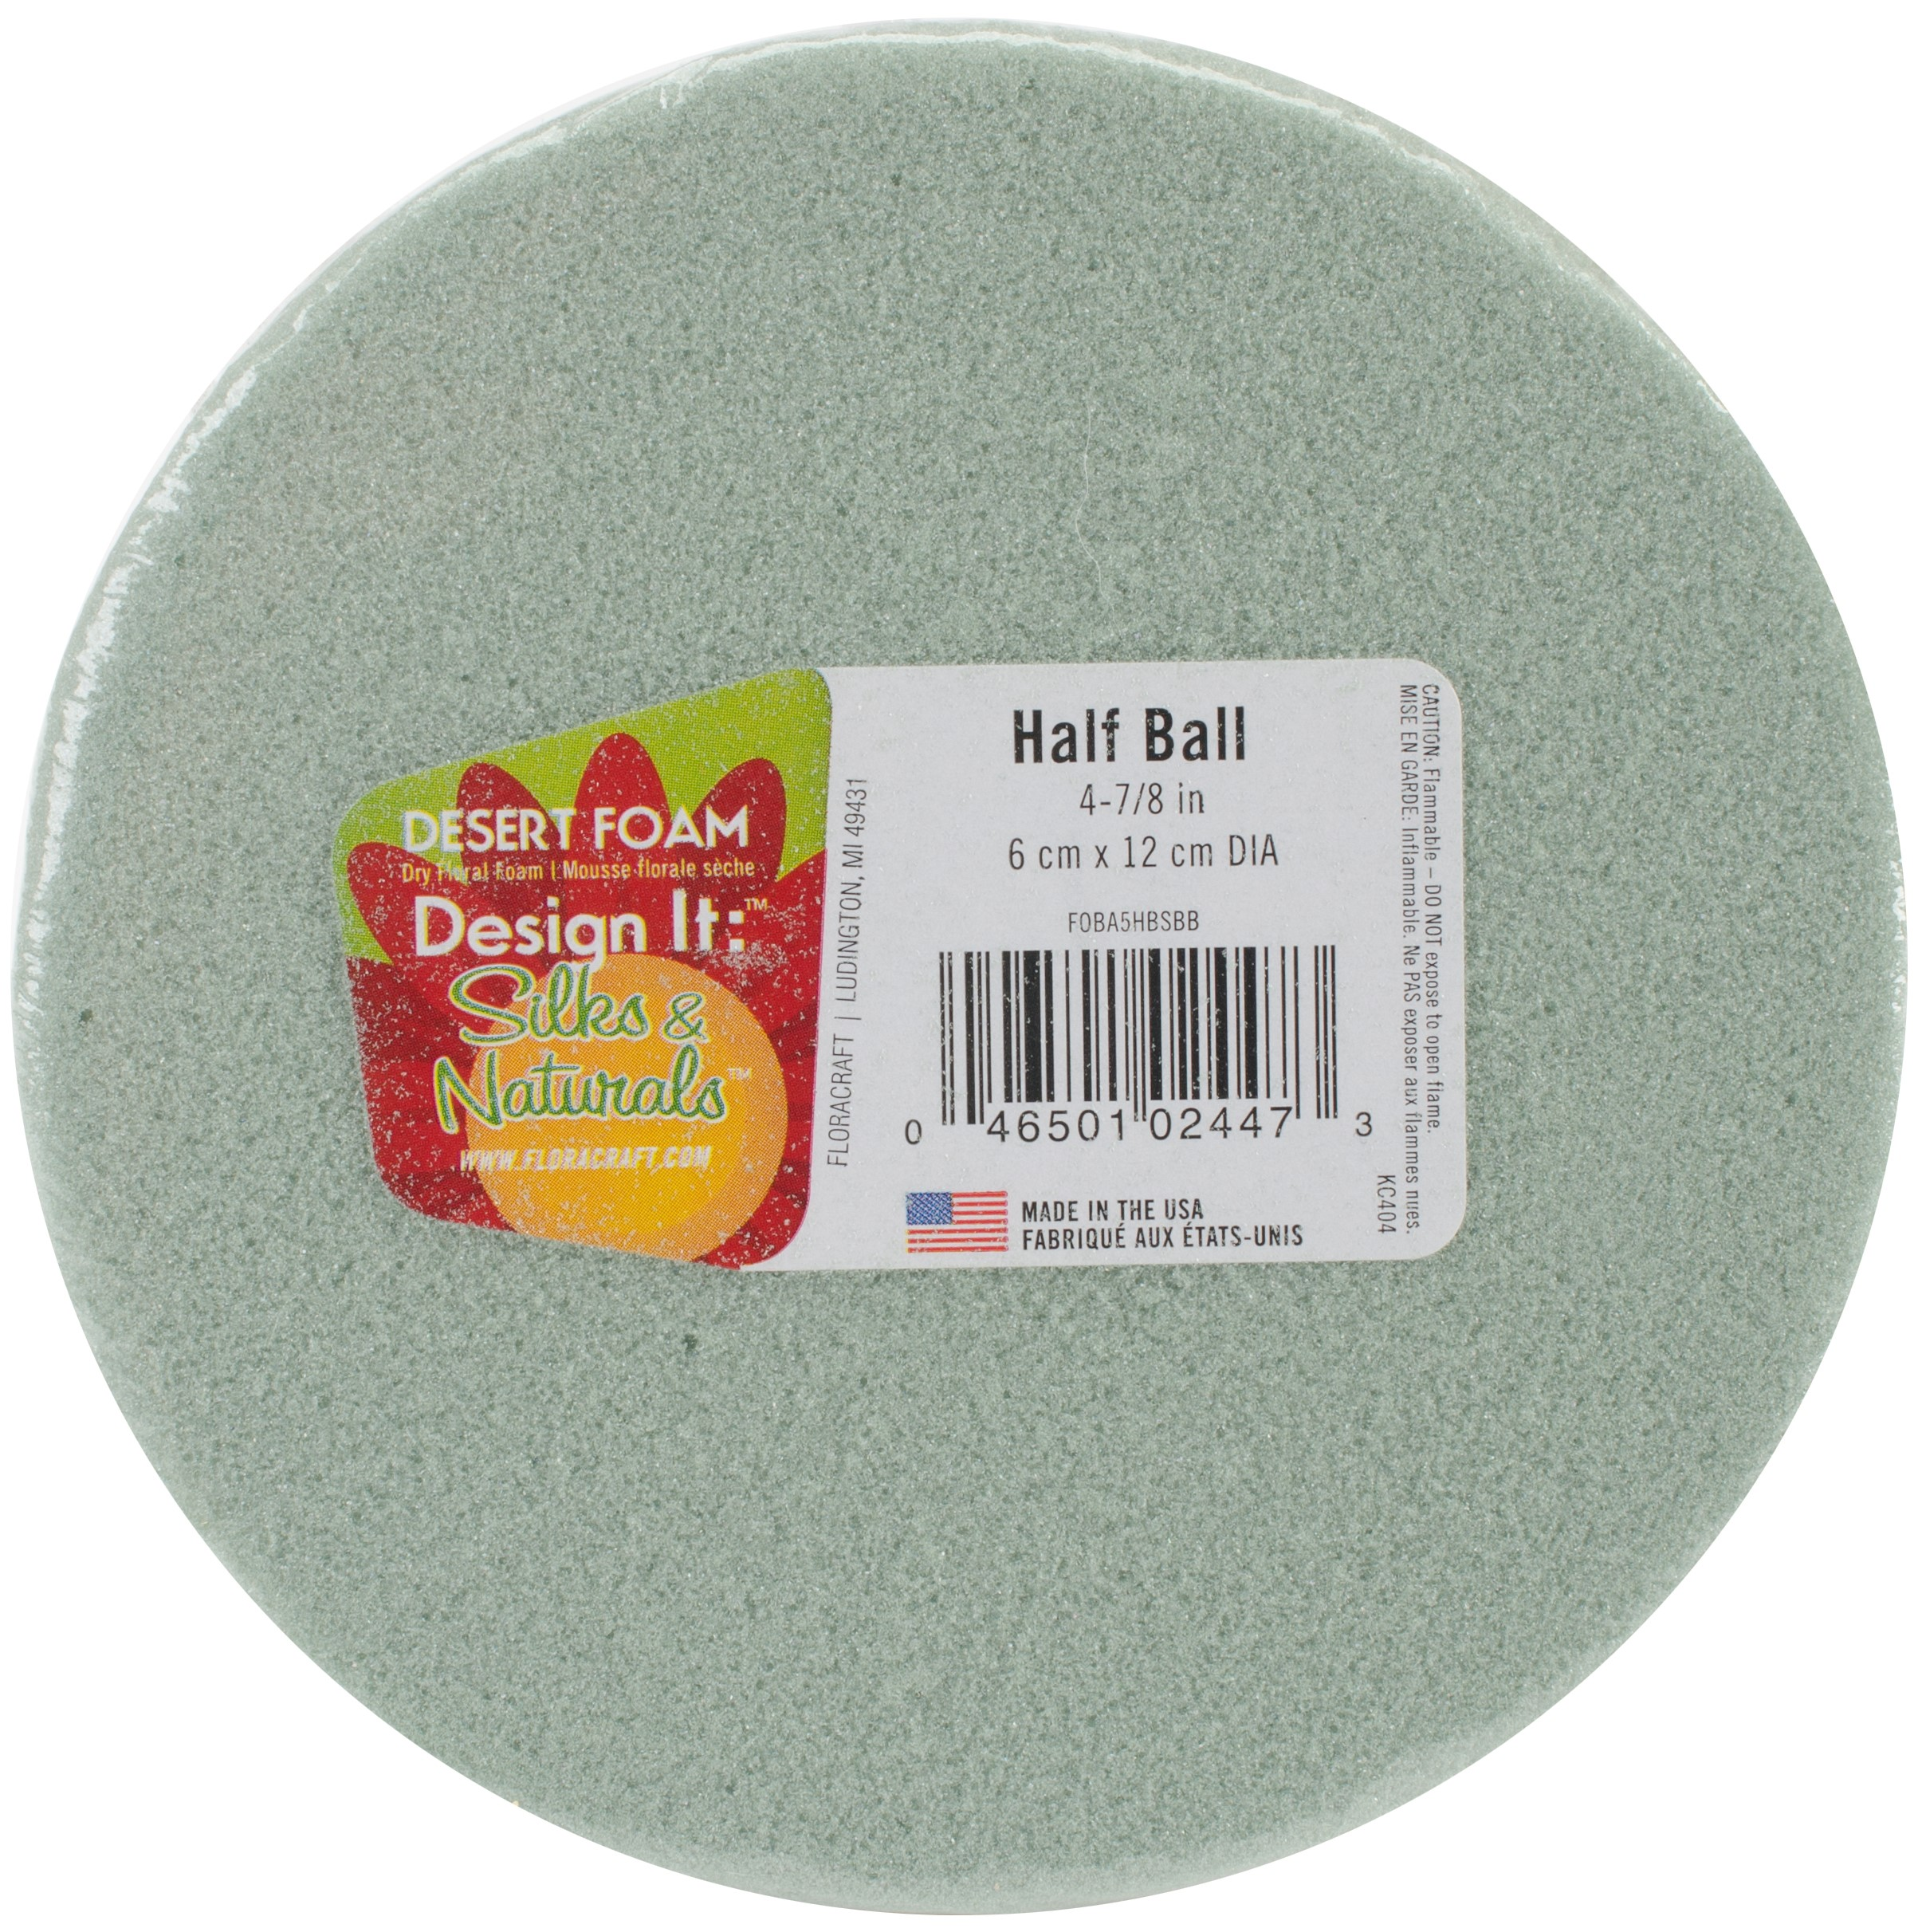 Design It Dry Foam Half Ball 5in Green